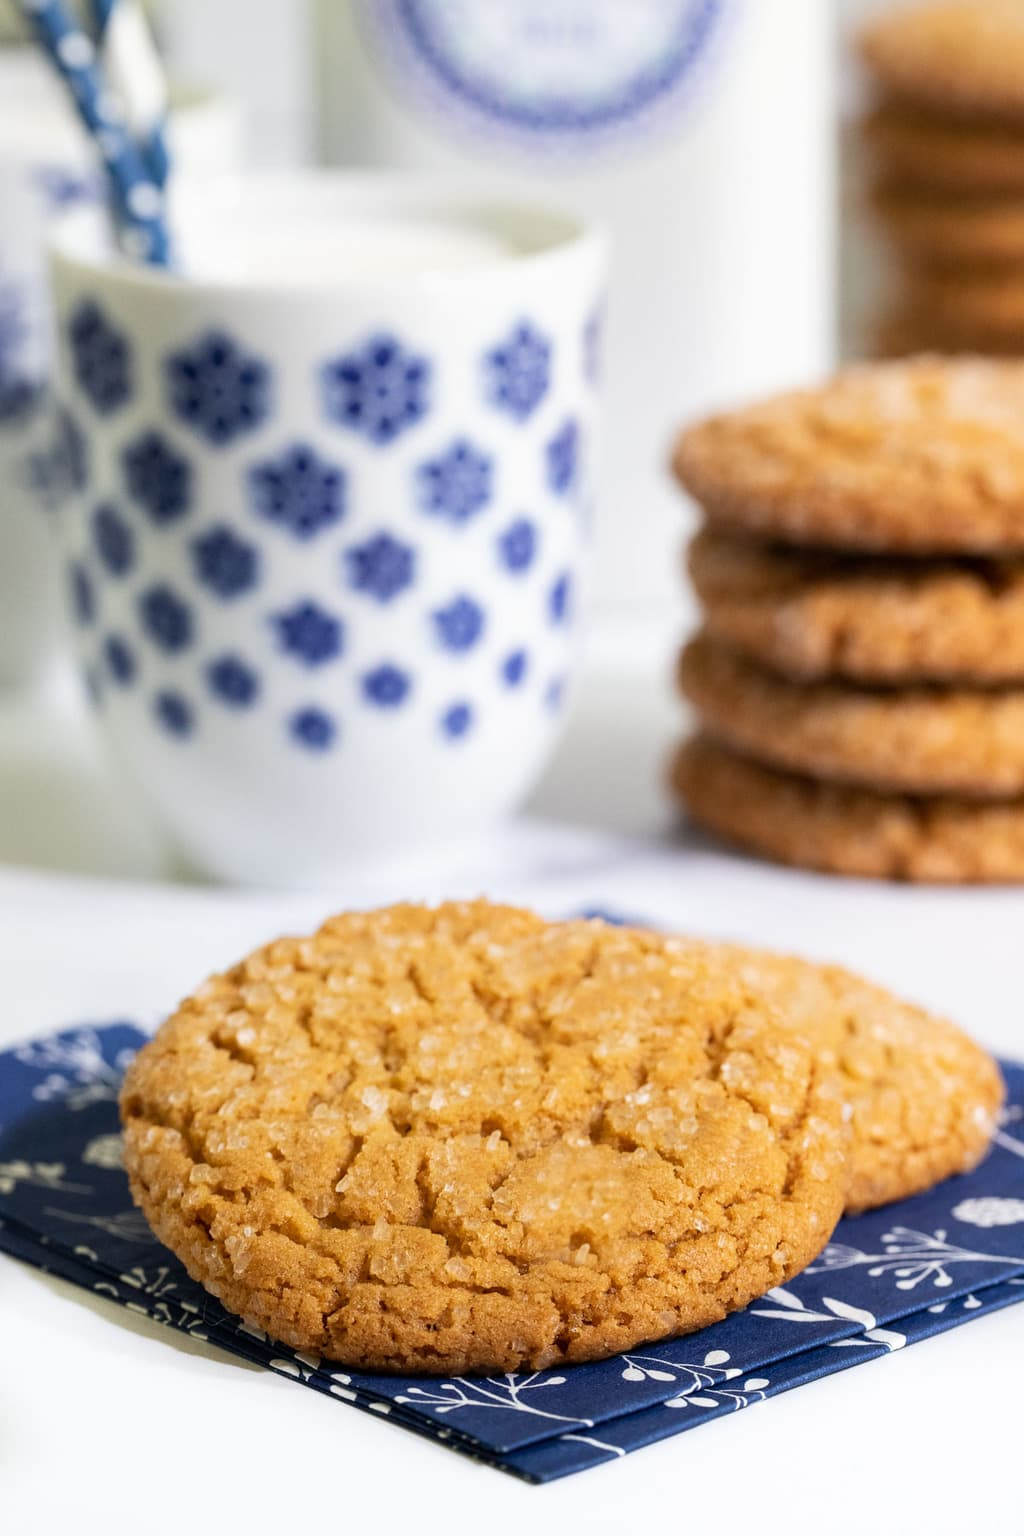 Vertical photo of a batch of Crinkly Crackly Peanut Butter Cookies with cookies in stacks and two on a navy blue napkin.